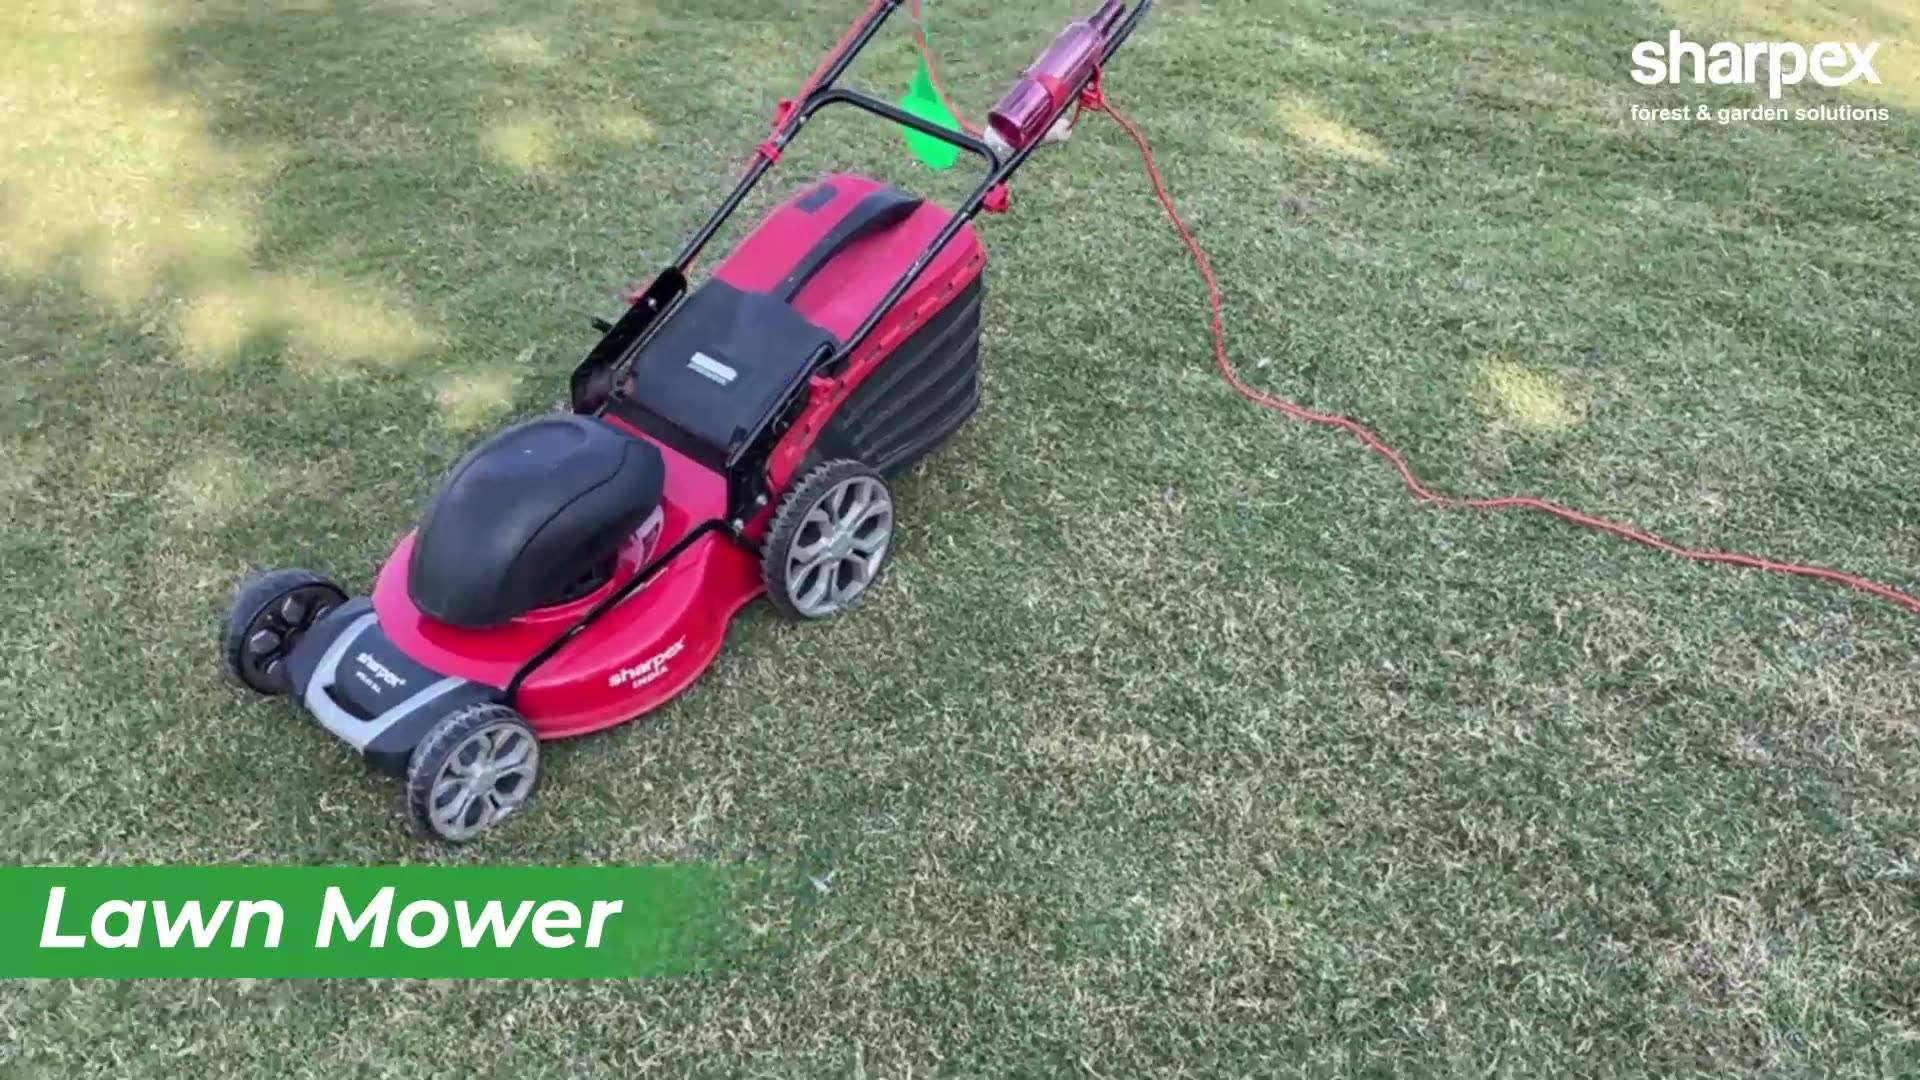 Catch a detailed glimpse of India's largest selling, zero maintainance lawn mower from #SharpexGardeningAndCommunity.  #GardenLovers #GardeningAccessories #GardeningTools #ModernGardeningTools #GardeningProducts #GardenProduct #Sharpex #SharpexIndia